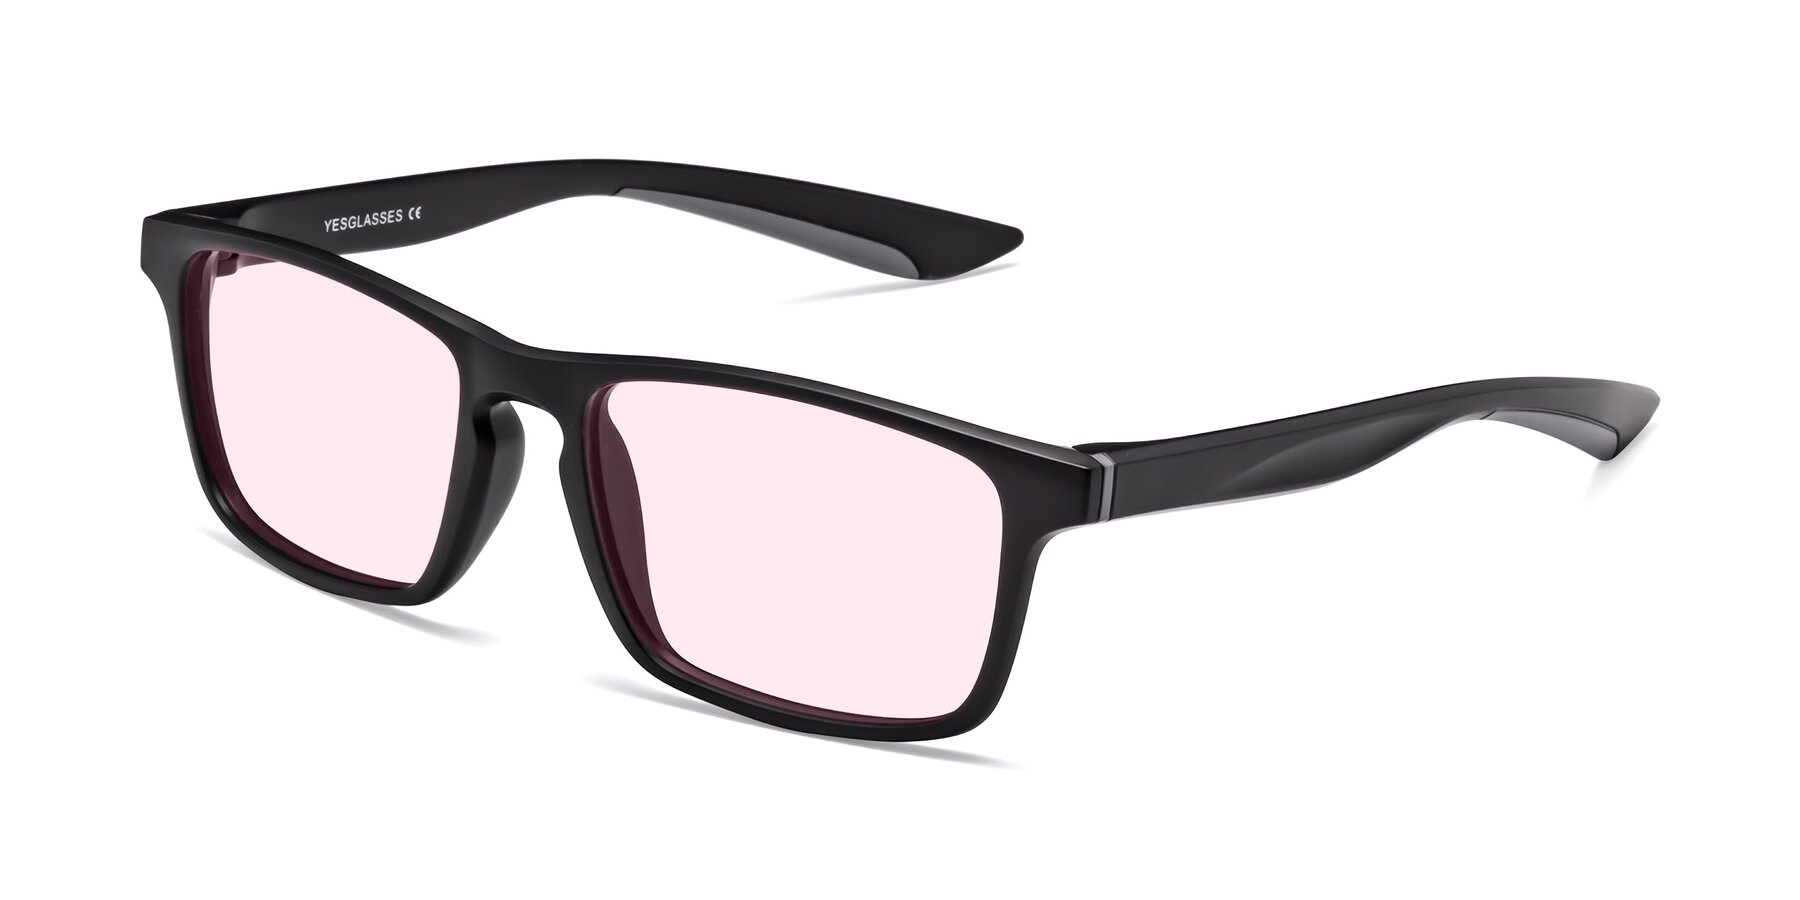 Angle of Passion in Matte Black-Gray with Light Pink Tinted Lenses